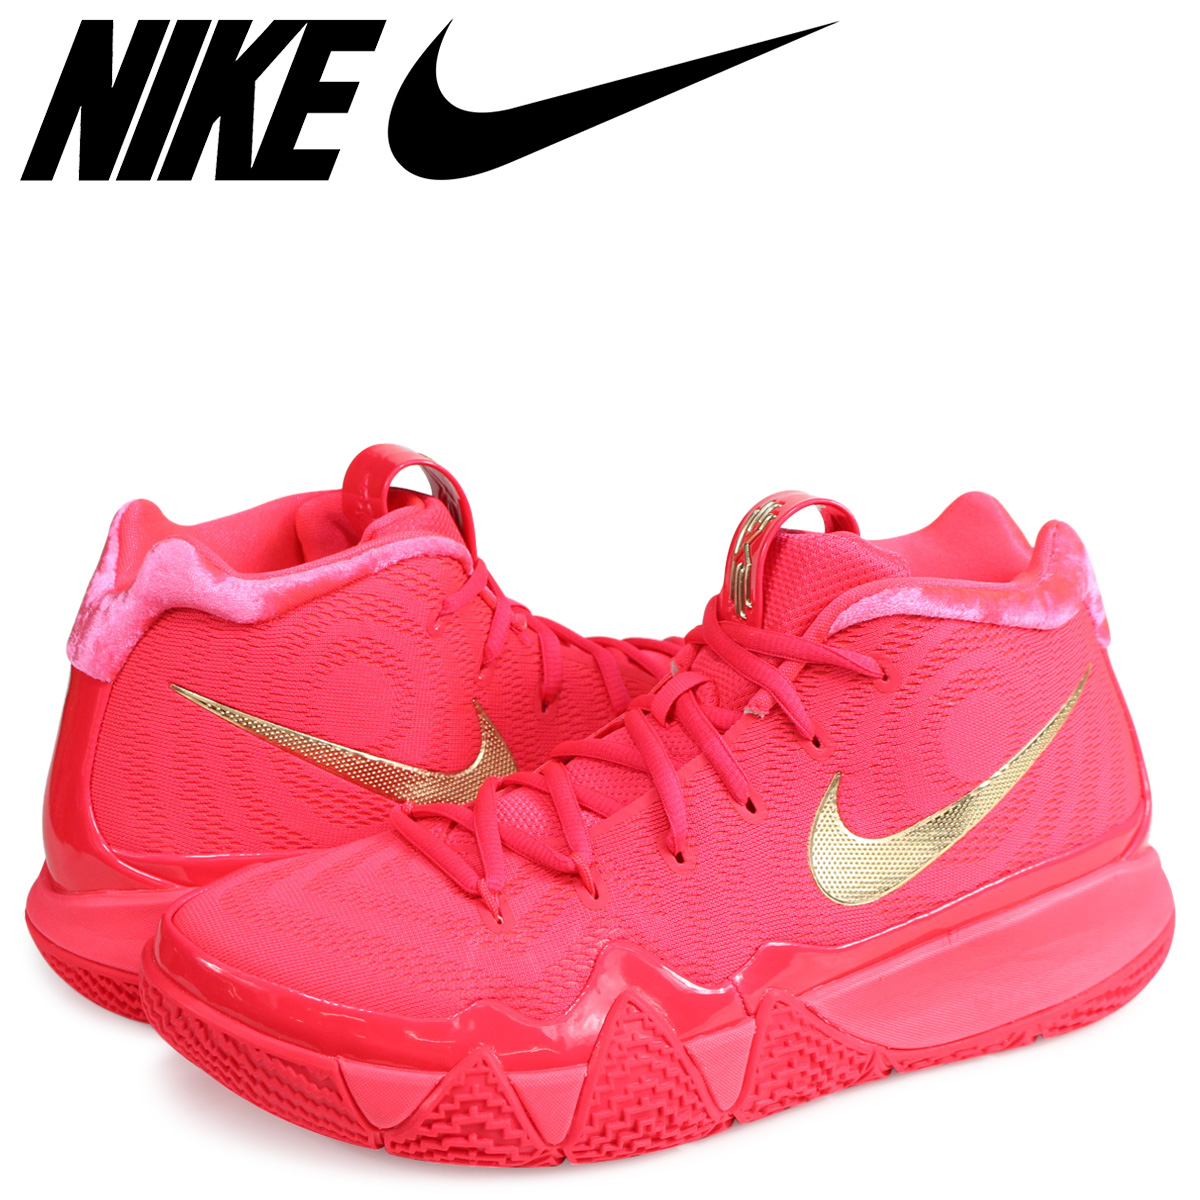 outlet on sale clearance prices arrives NIKE Nike chi Lee 4 sneakers men KYRIE 4 EP RED CARPET 943,807-602 red red